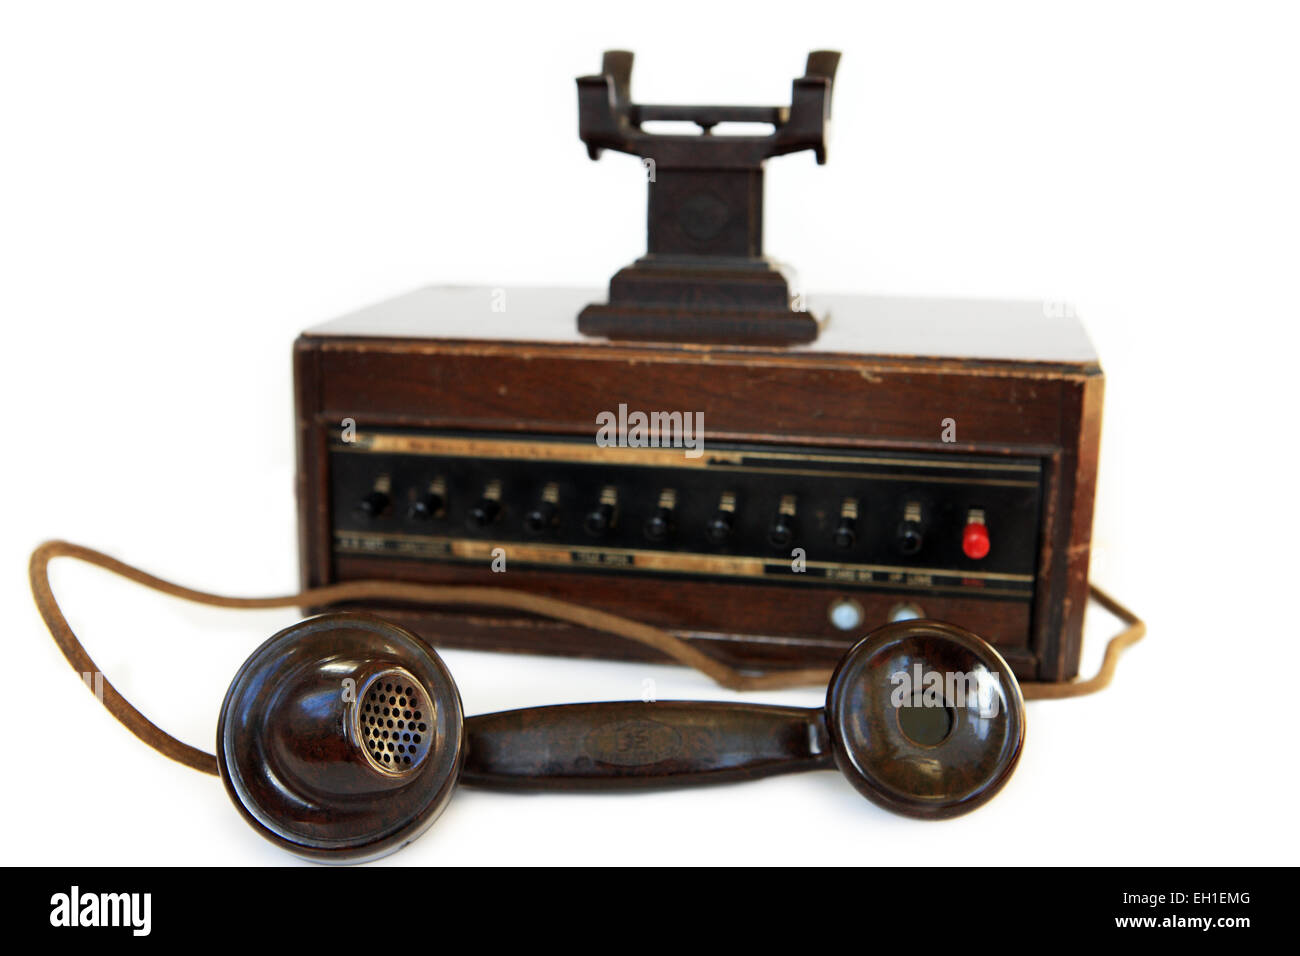 1940's Dictograph telephone system and Bakelite phone - Stock Image